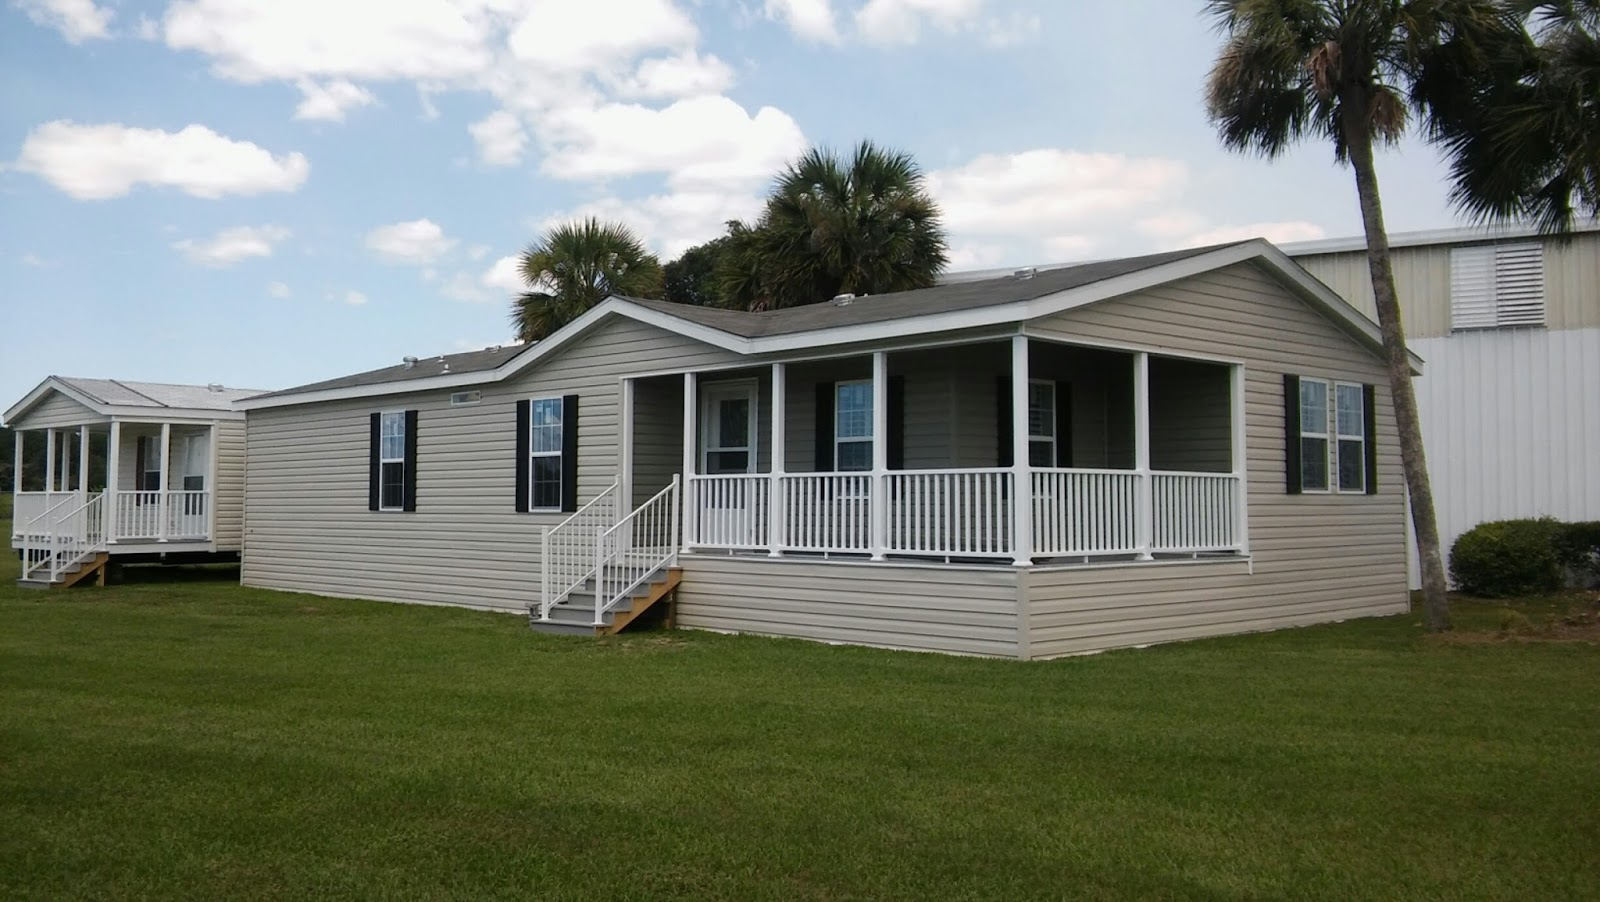 Modular homes with wrap around porches - Myranda Nice Wrap Around Porch 1484 Square Feet 3 Br And 2 Ba Incredible Kitchen